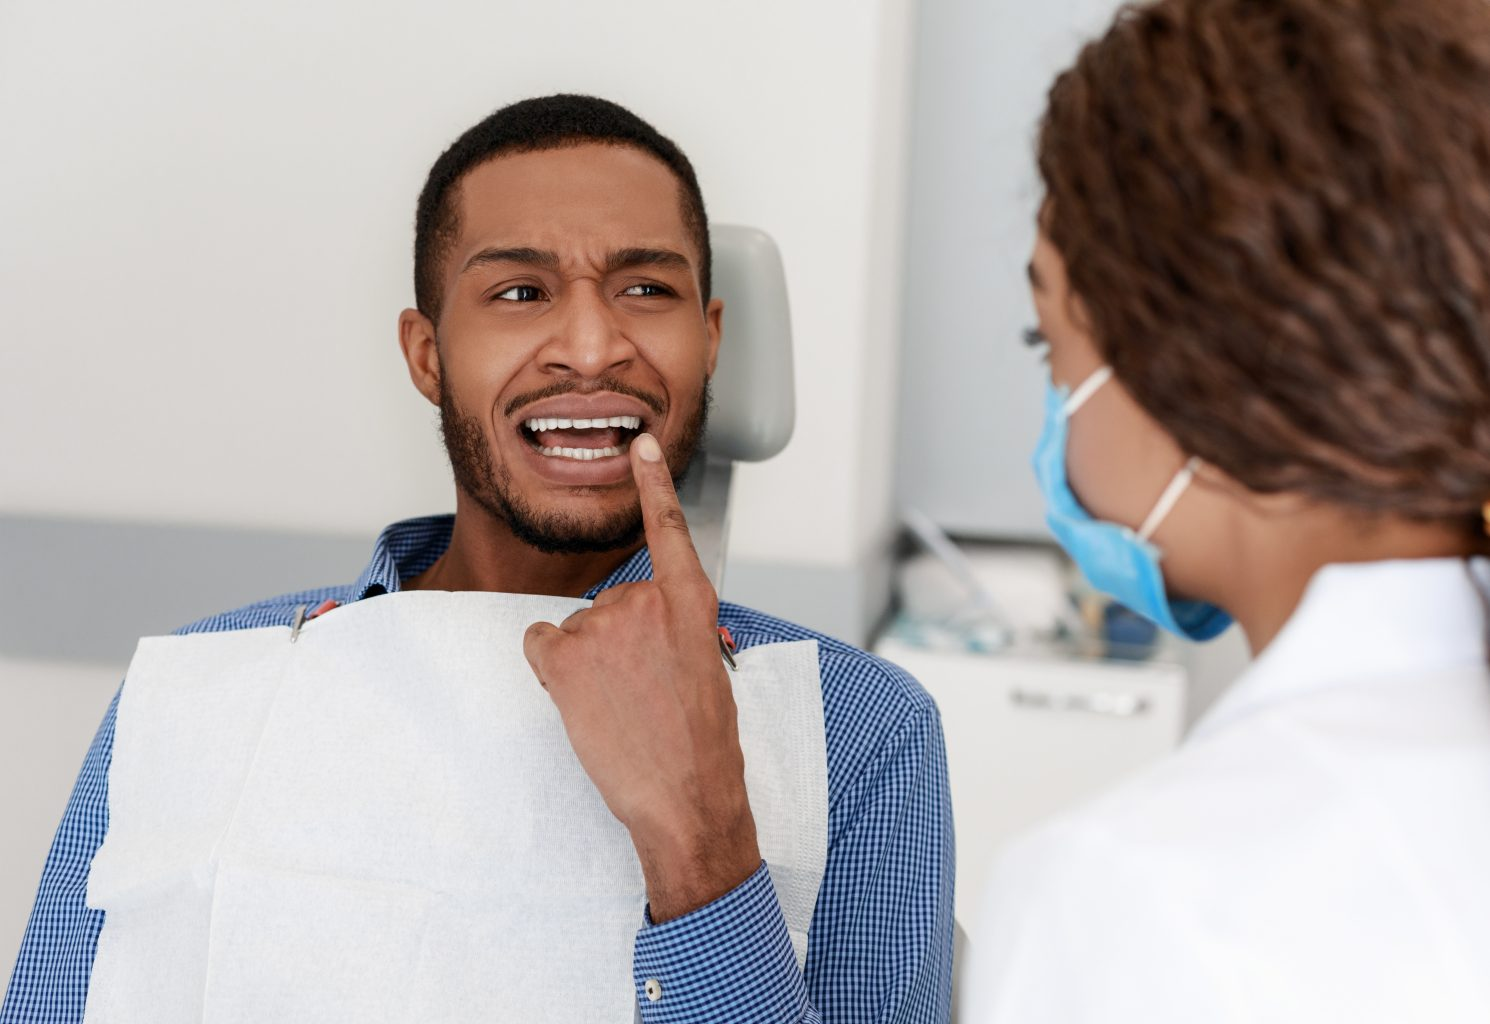 Black Guy Visiting Dentist, Showing Doctor Painful Teeth